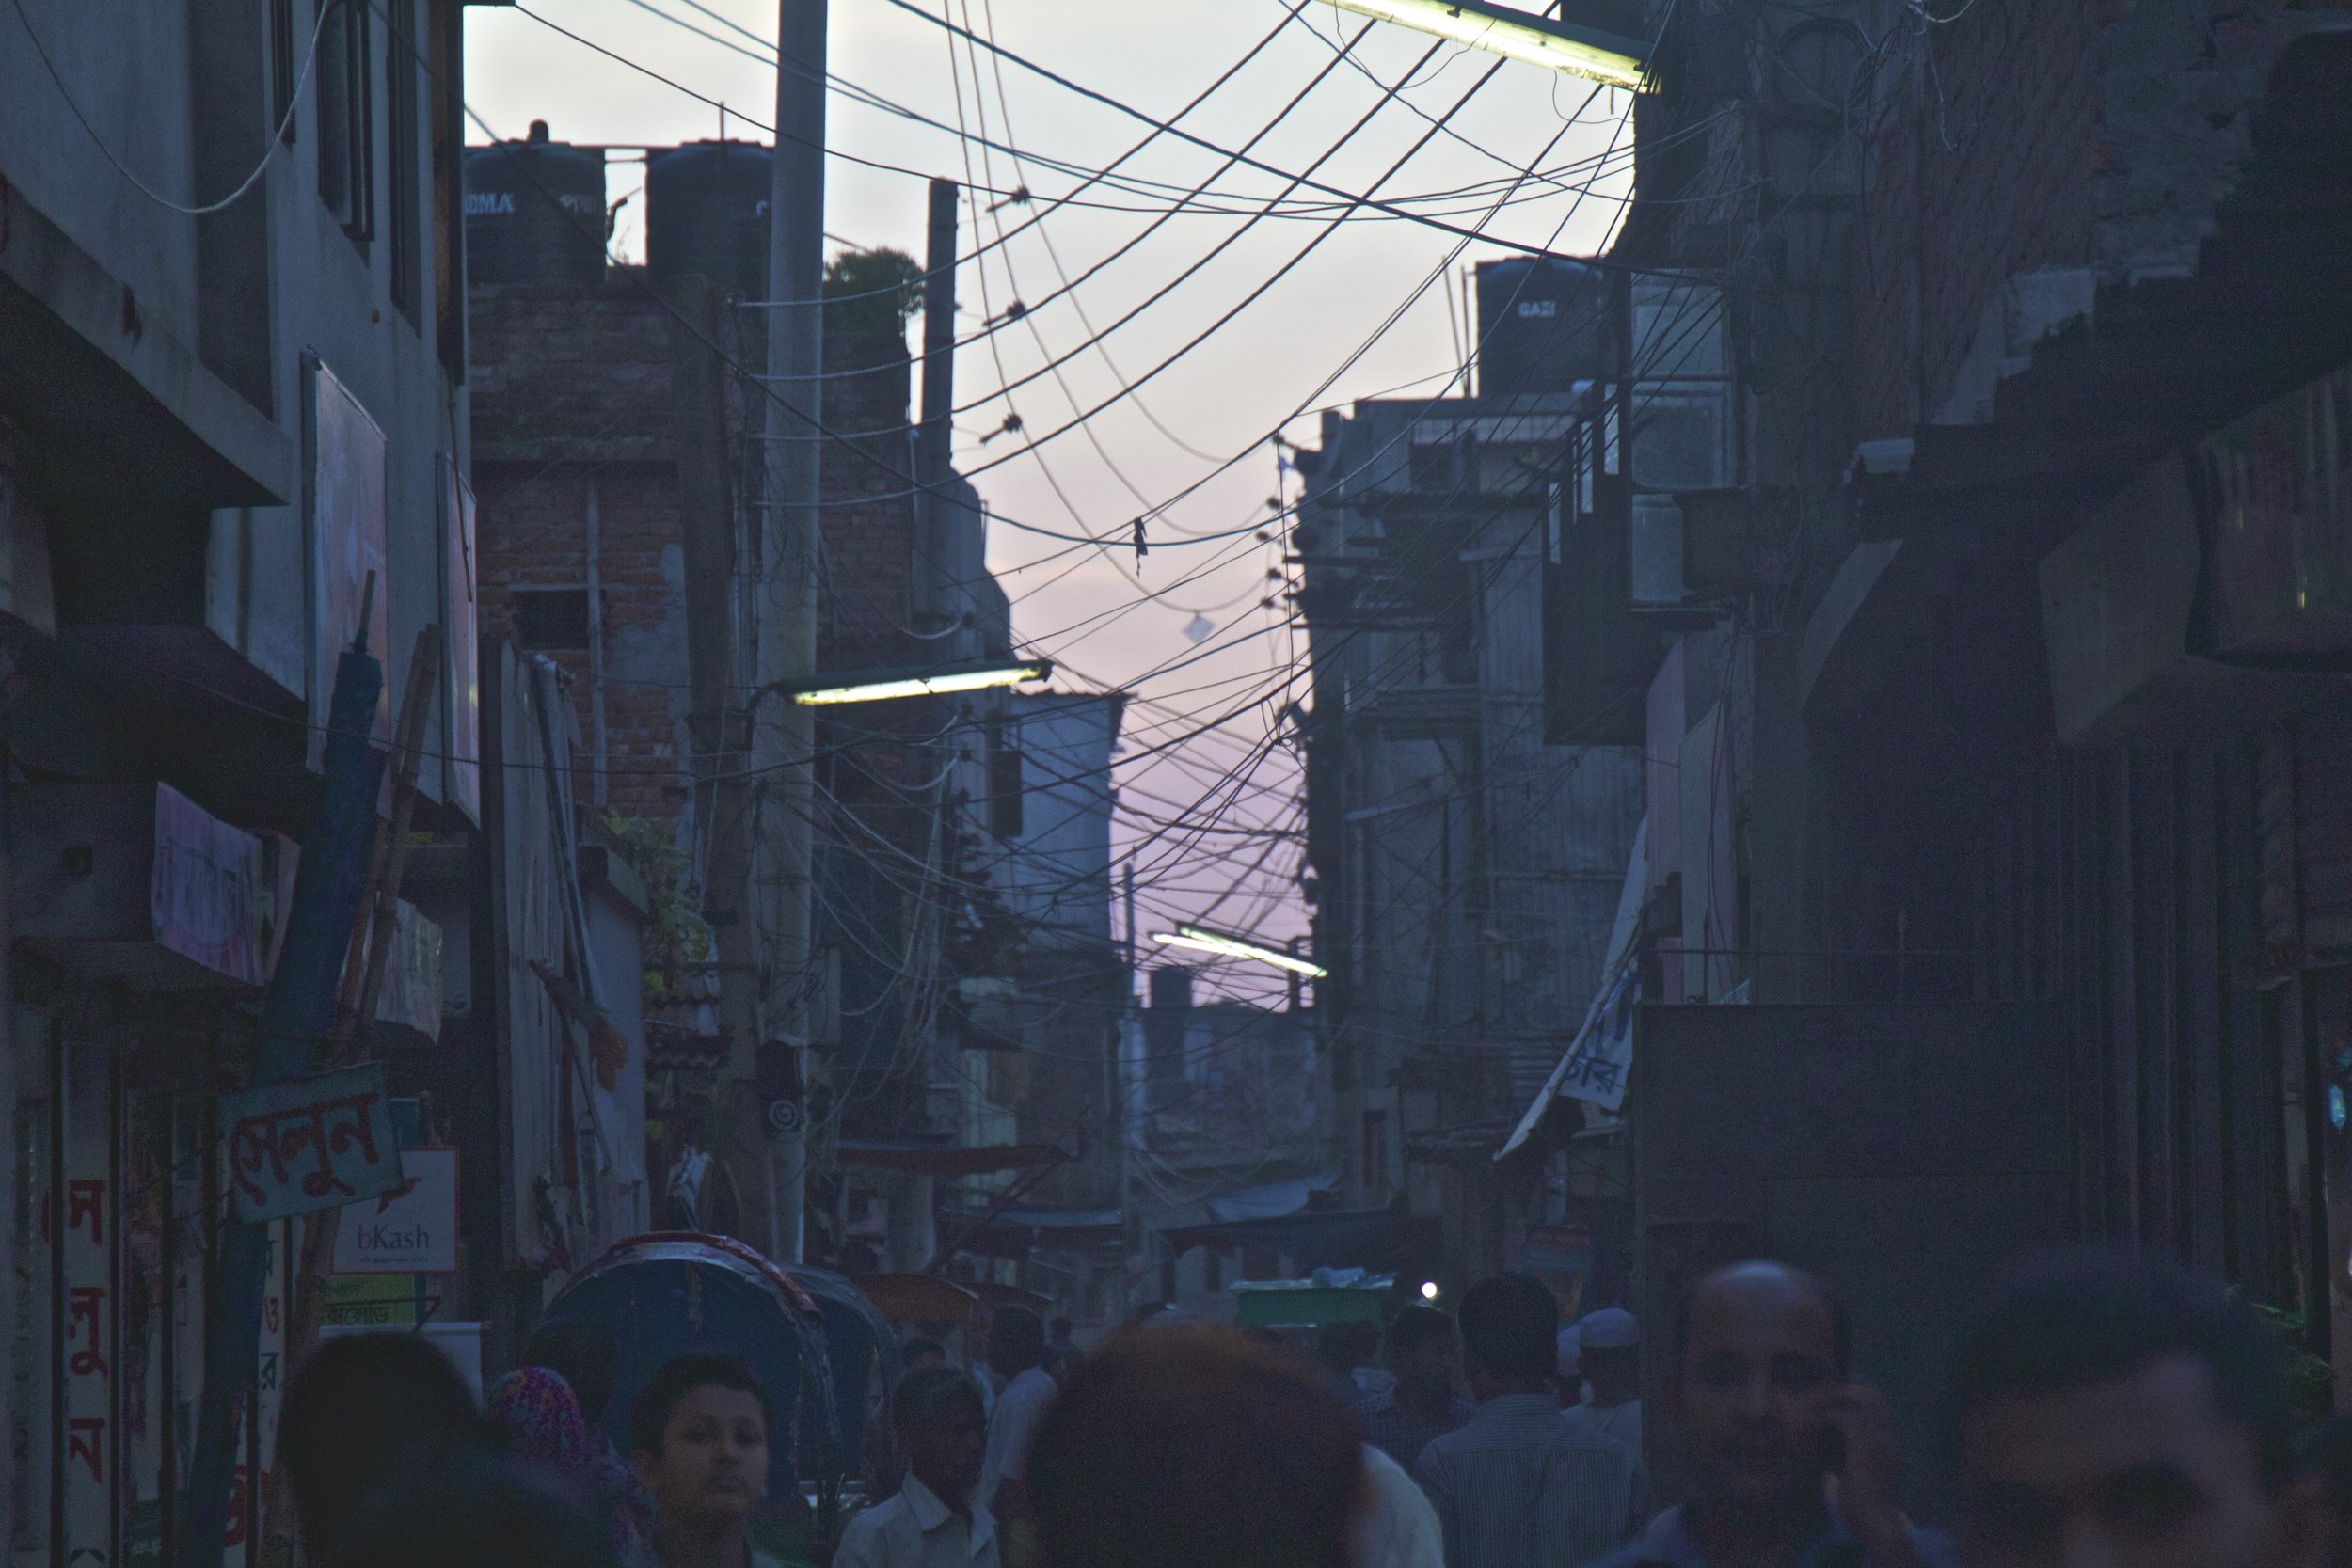 rayer bazar dhaka slums sunset 4.jpg